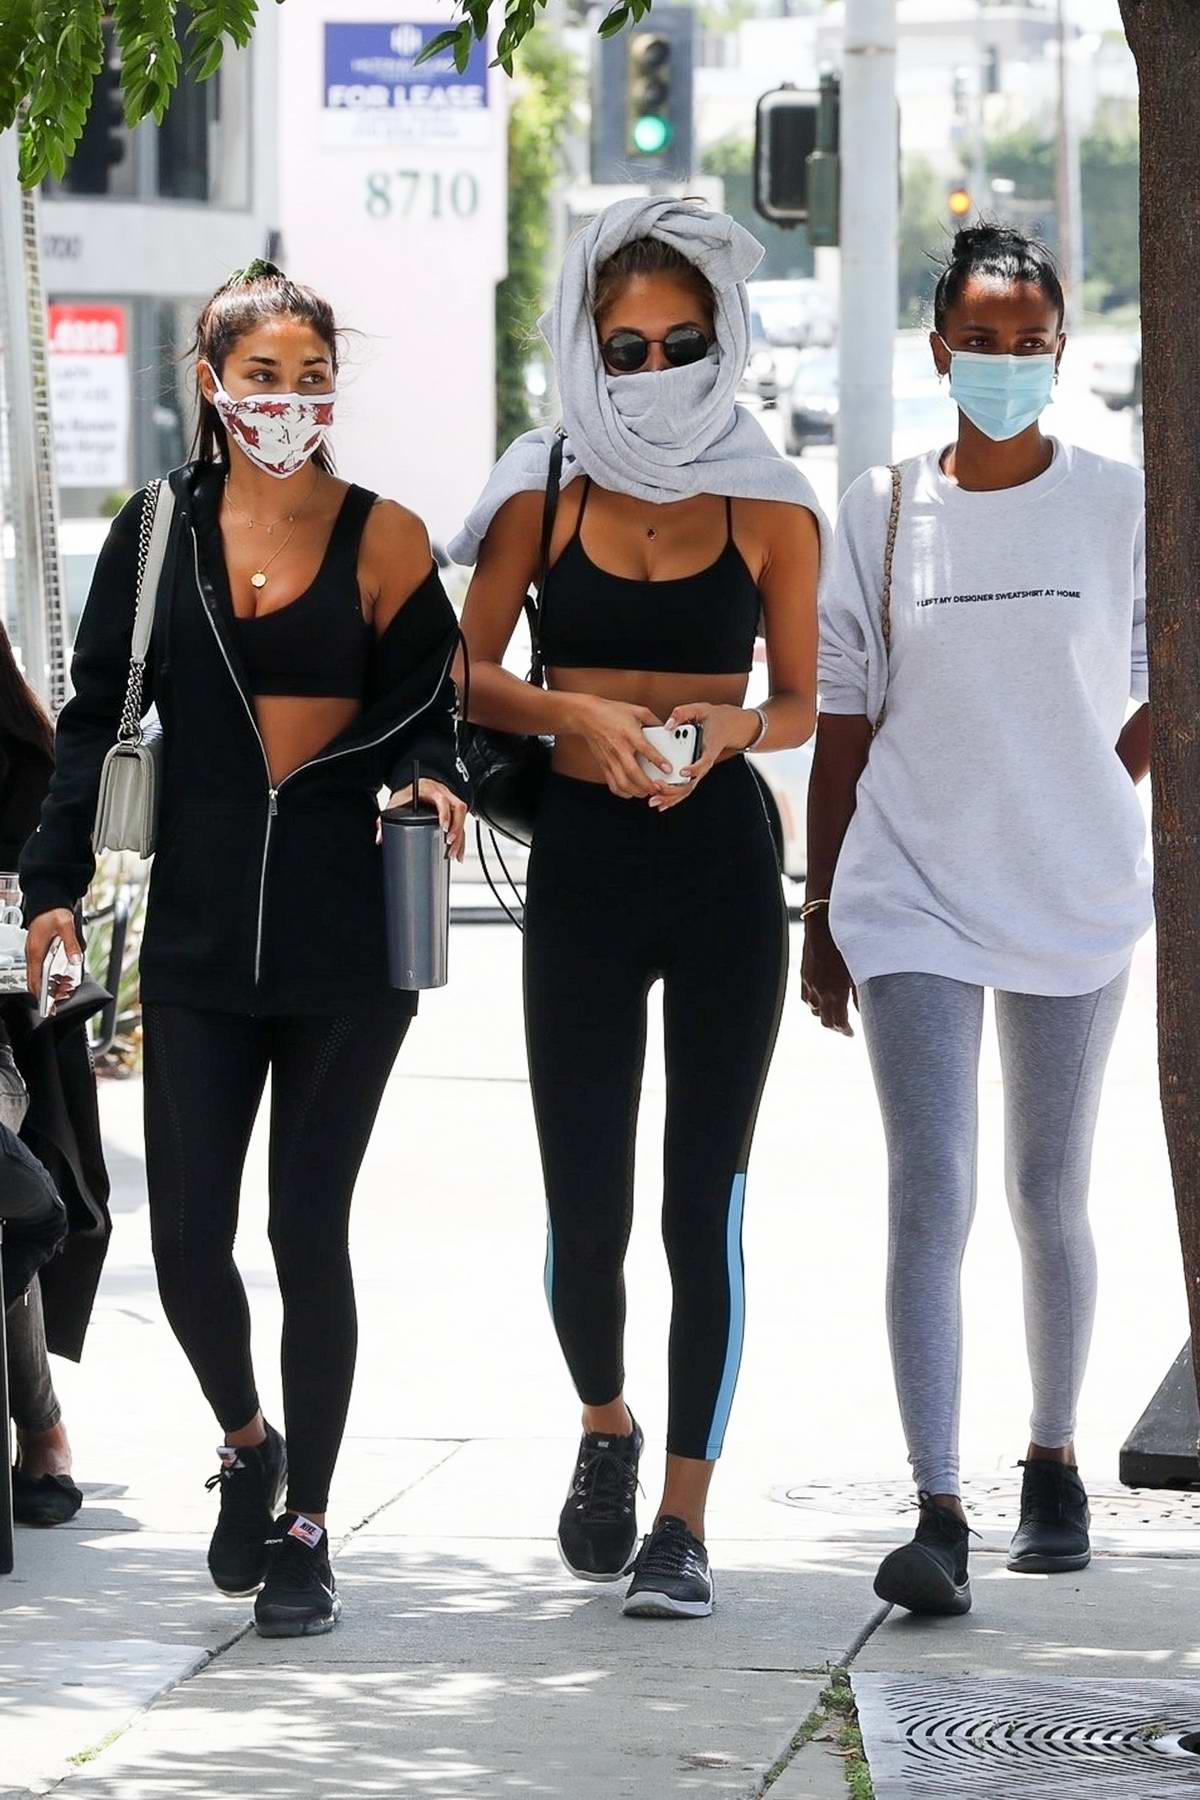 Chantel Jeffries, Jasmine Tookes and Jocelyn Chew grab a bite together after hitting the gym in Los Angeles